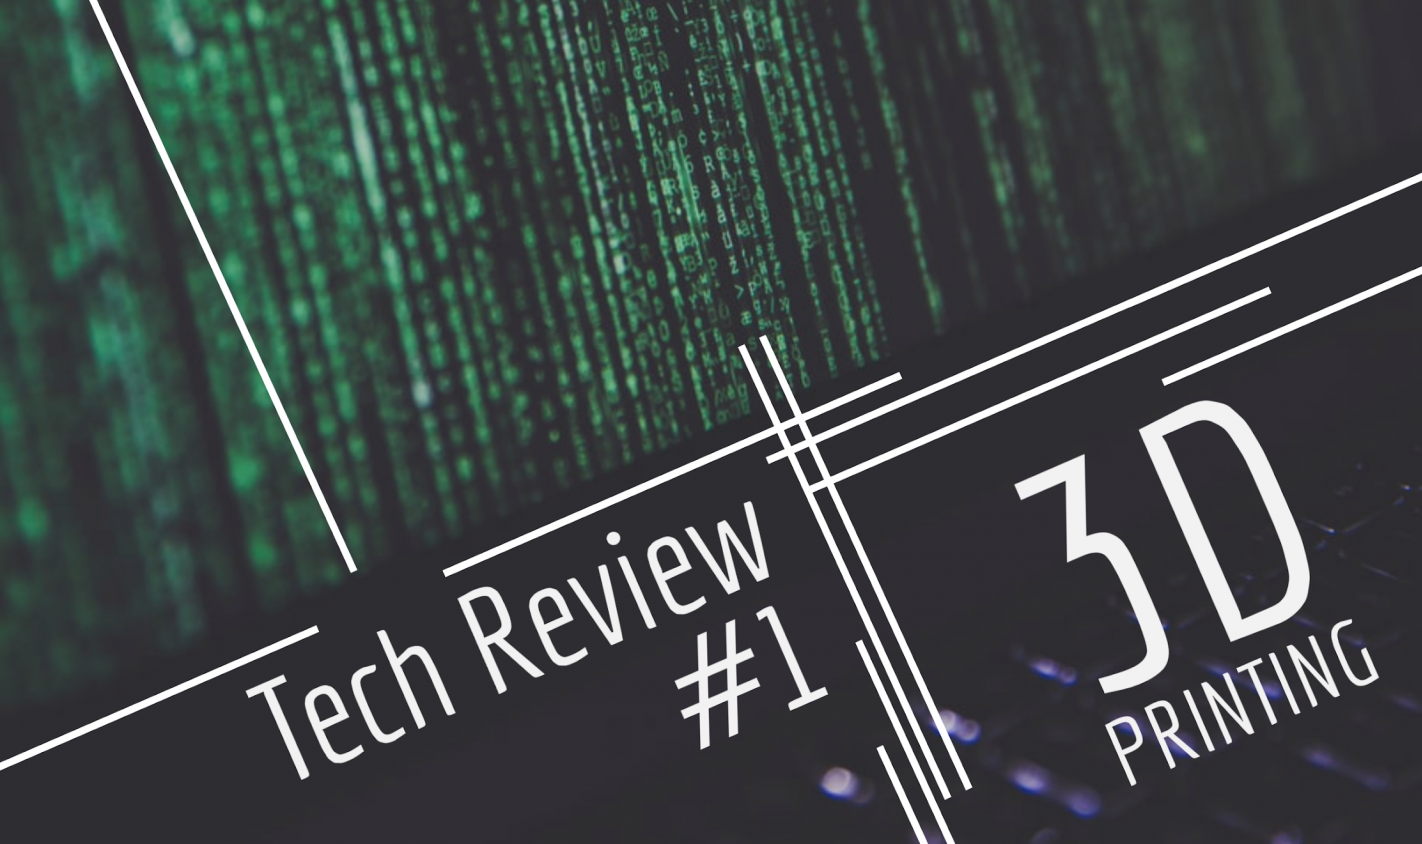 Technology Review #1: 3D Printing